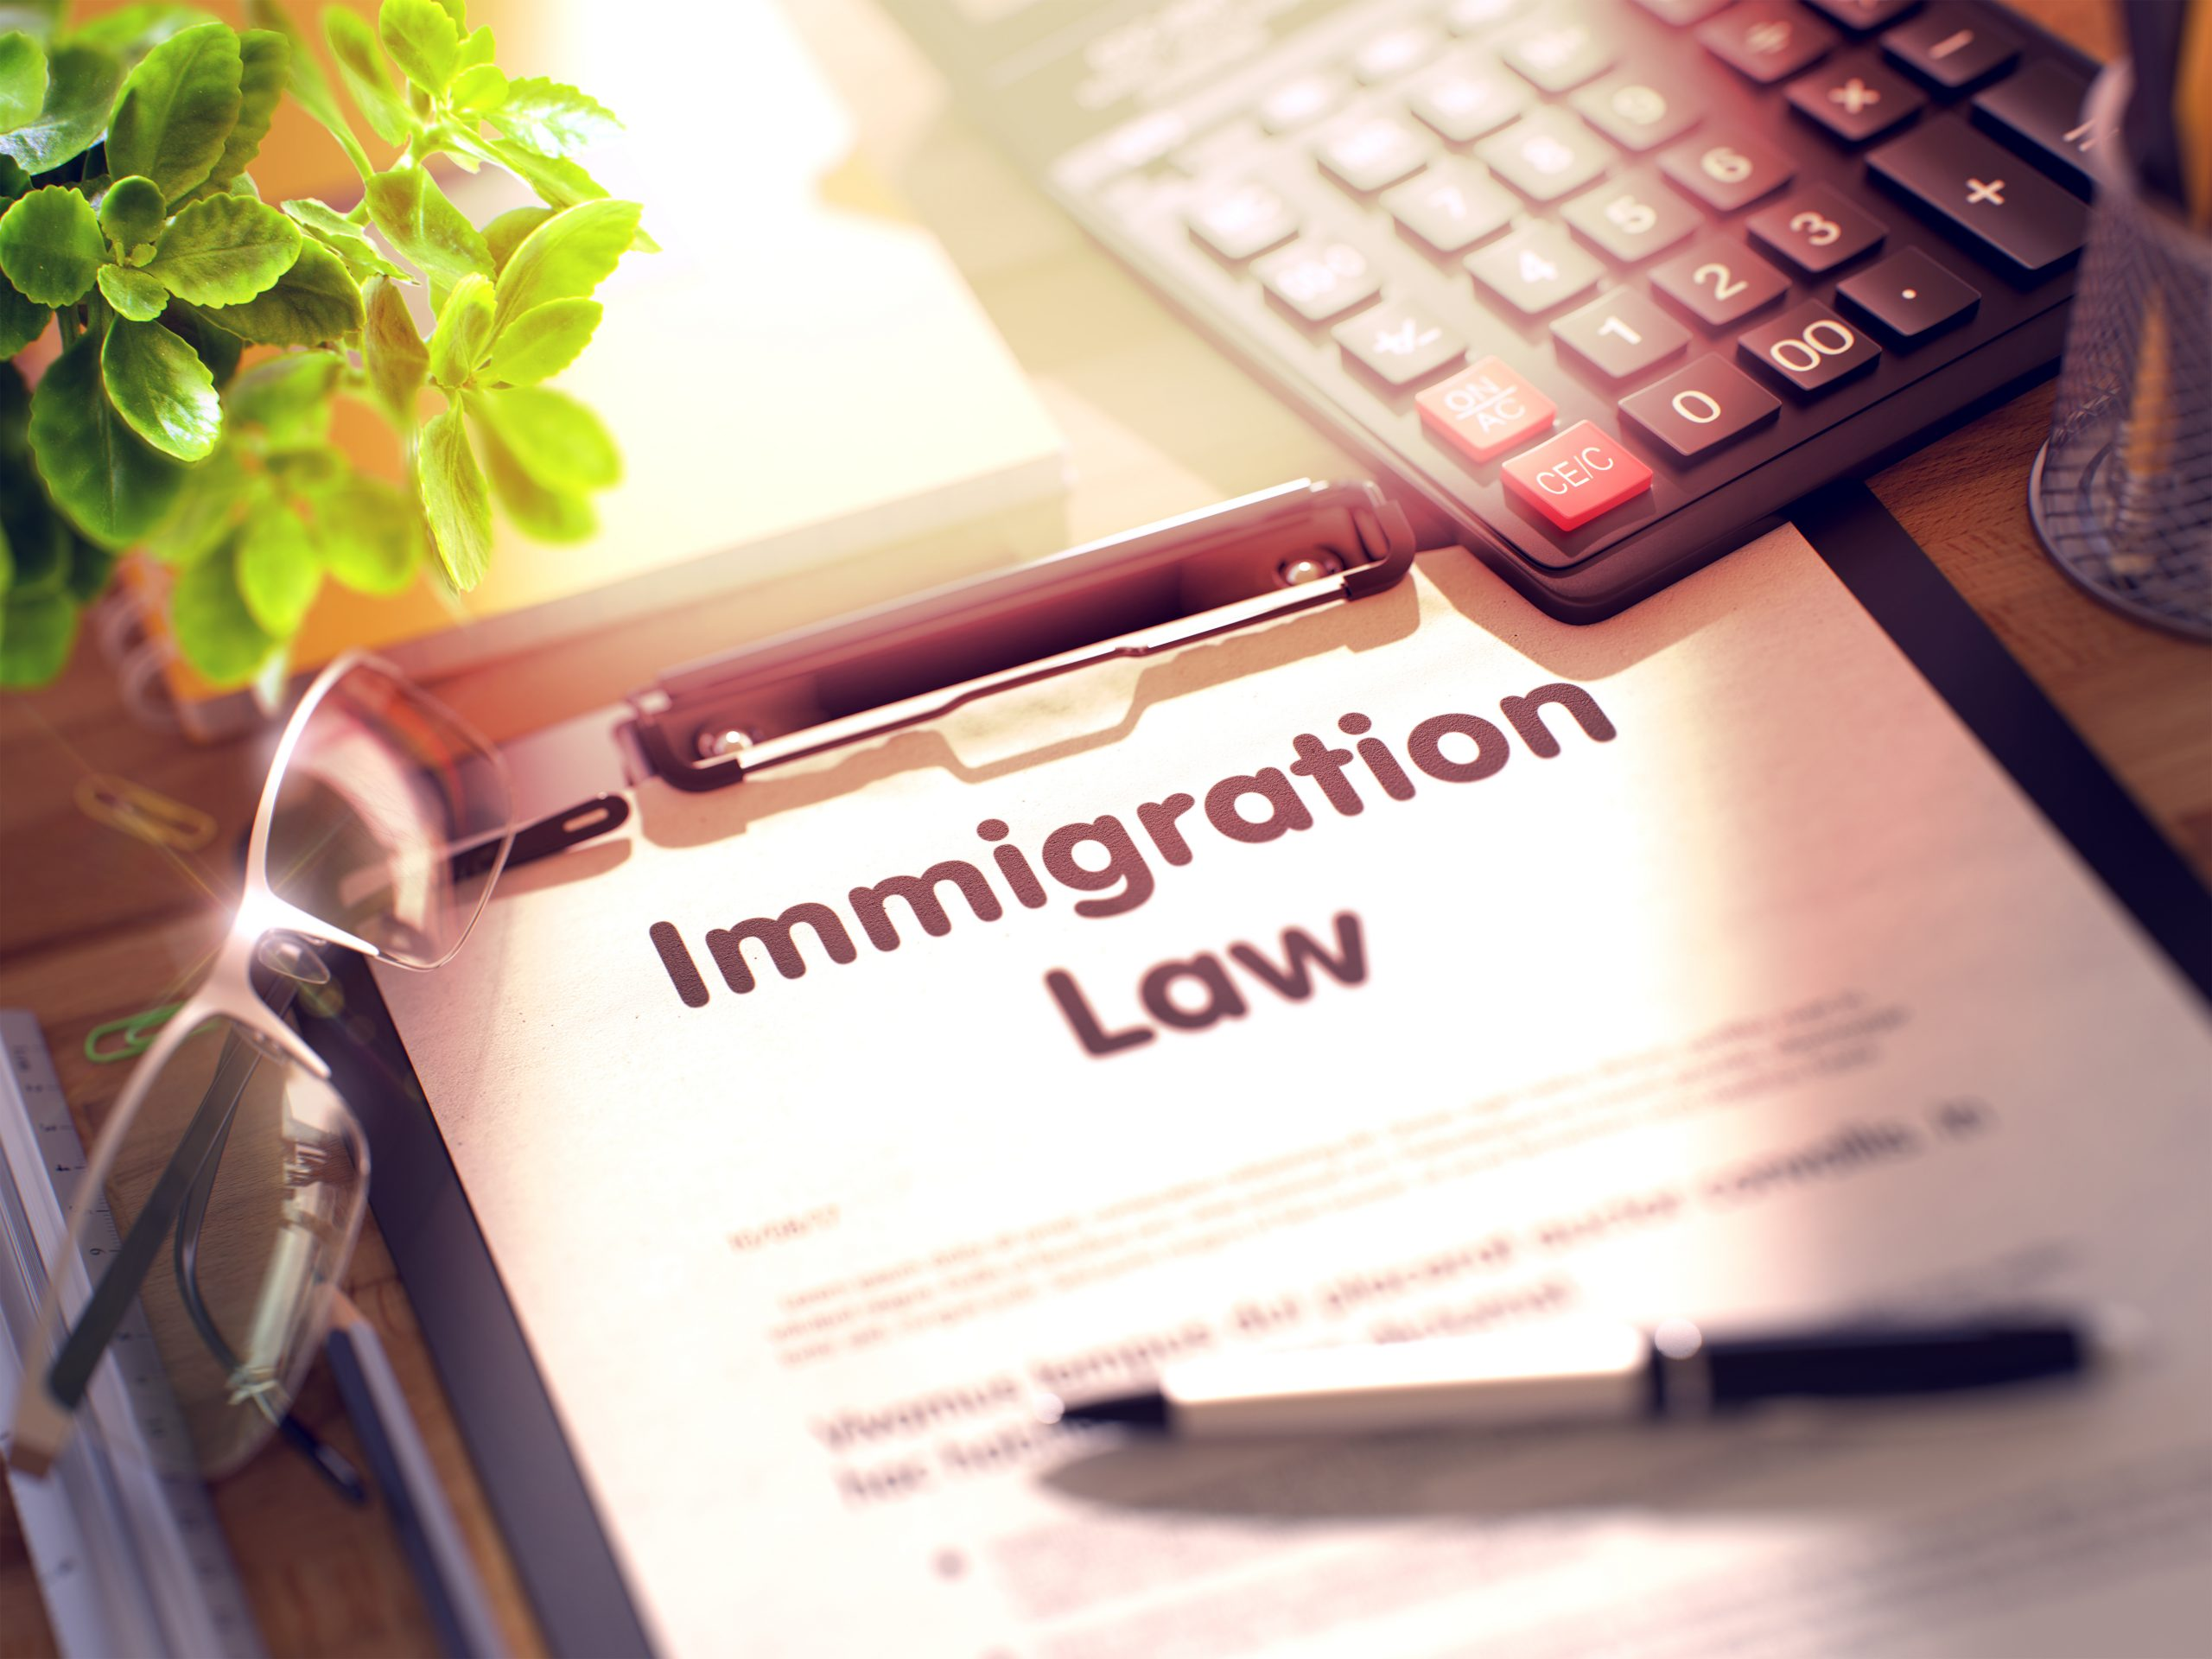 Immigration Law on Clipboard. Wooden Office Desk with a Lot of Business and Office Supplies on It. 3d Rendering. Blurred and Toned Illustration.